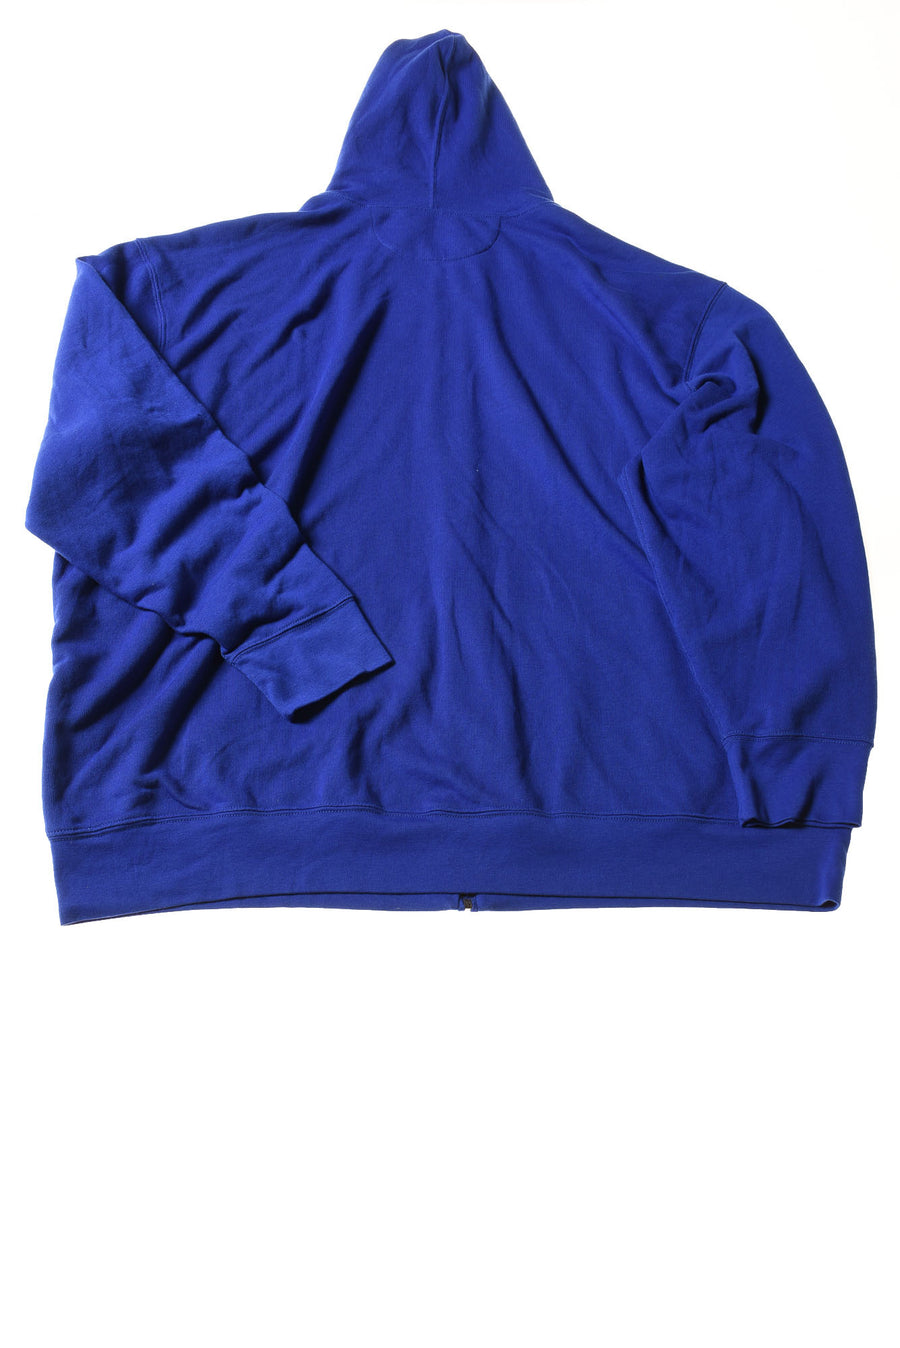 USED Ralph Lauren Men's Hoodie 4X Blue